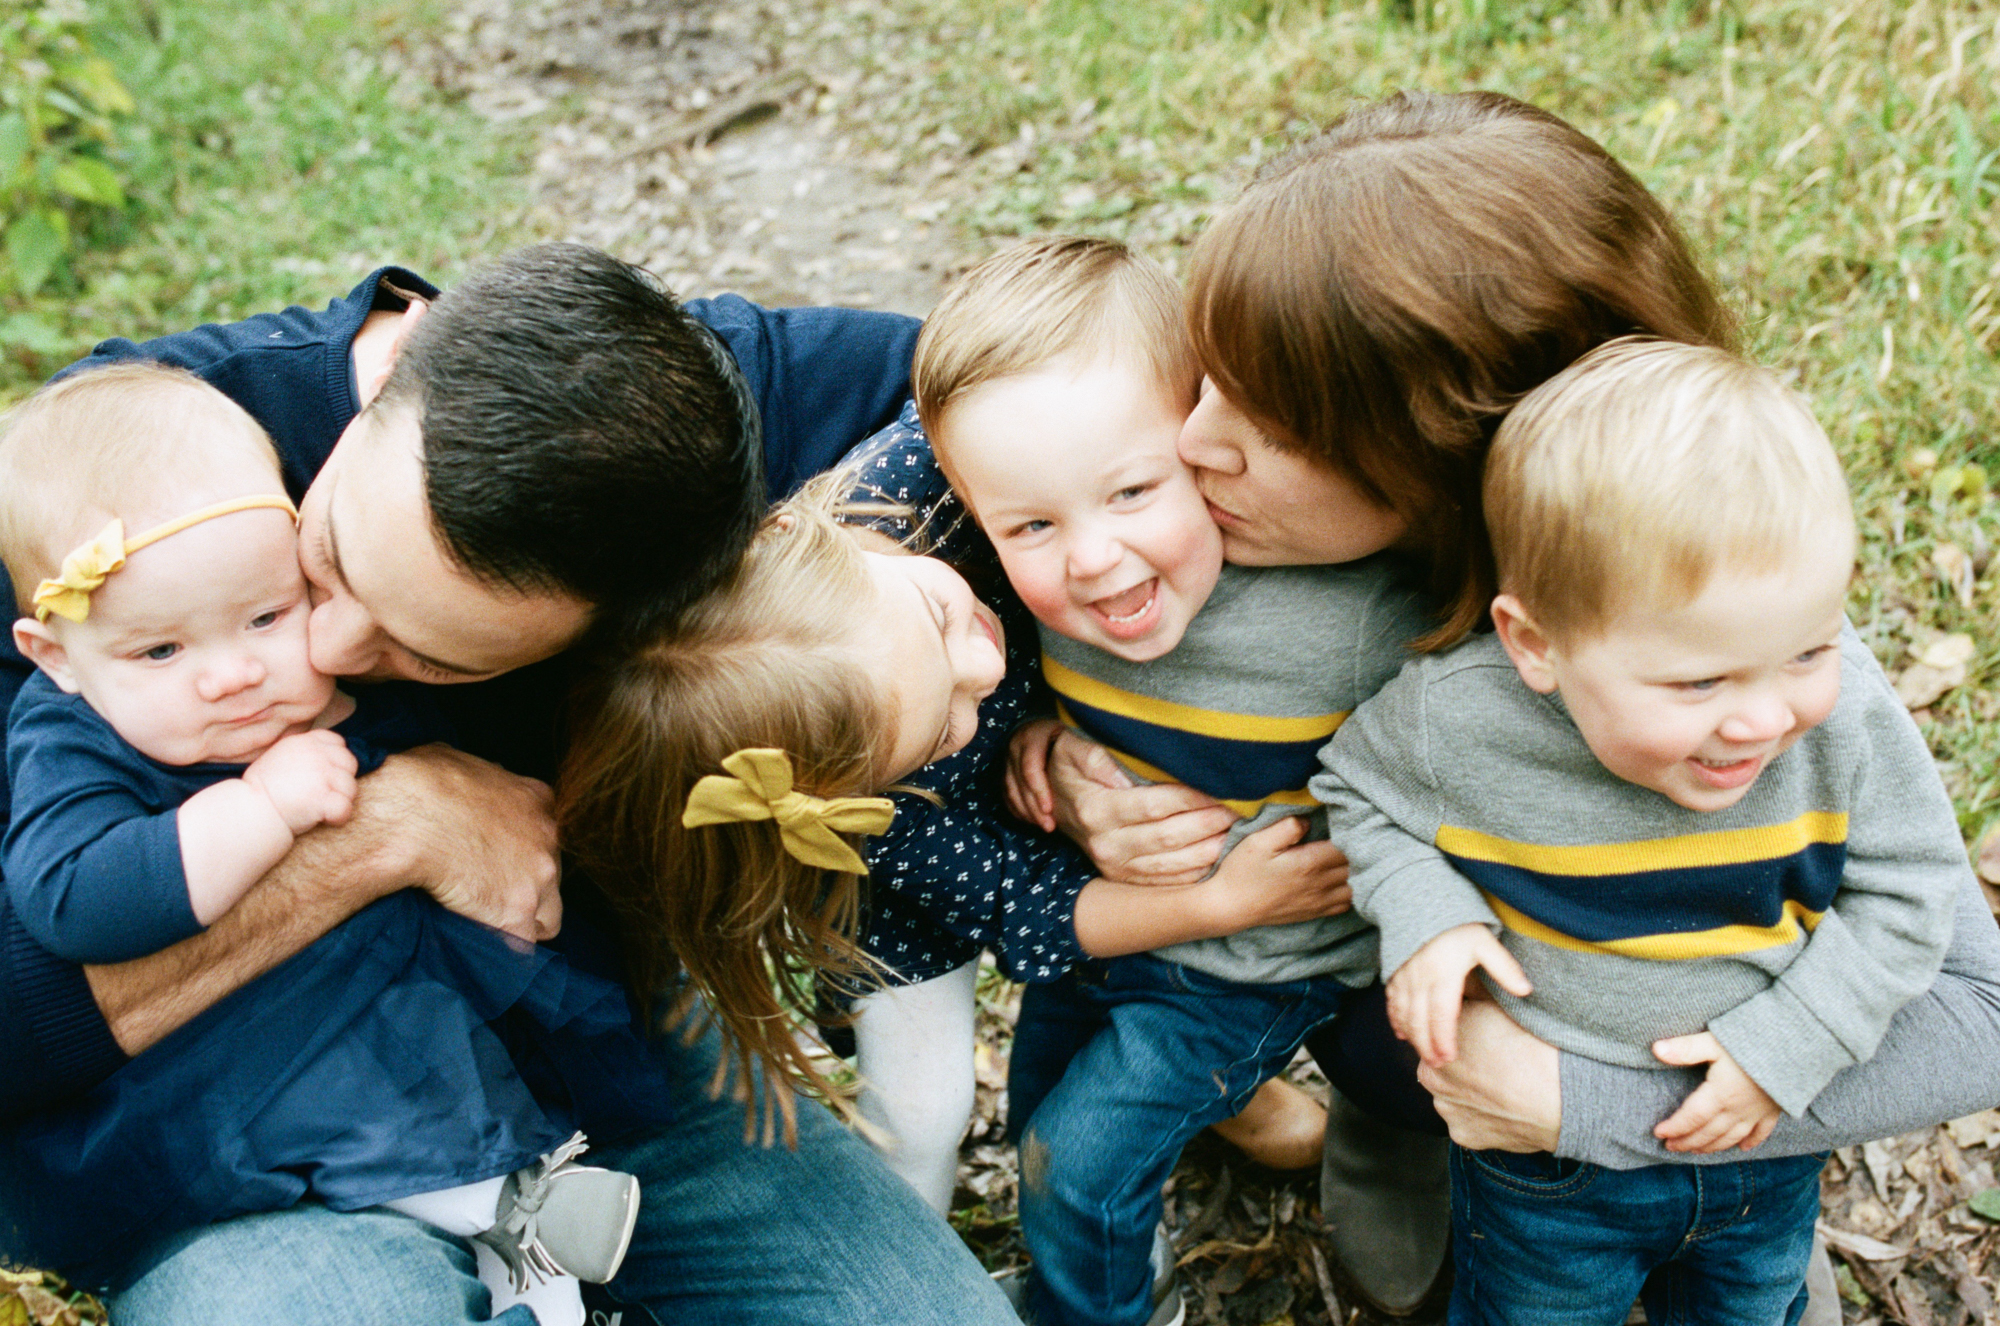 Minnetonka-Family-Photographer-Amy-Berge.jpg